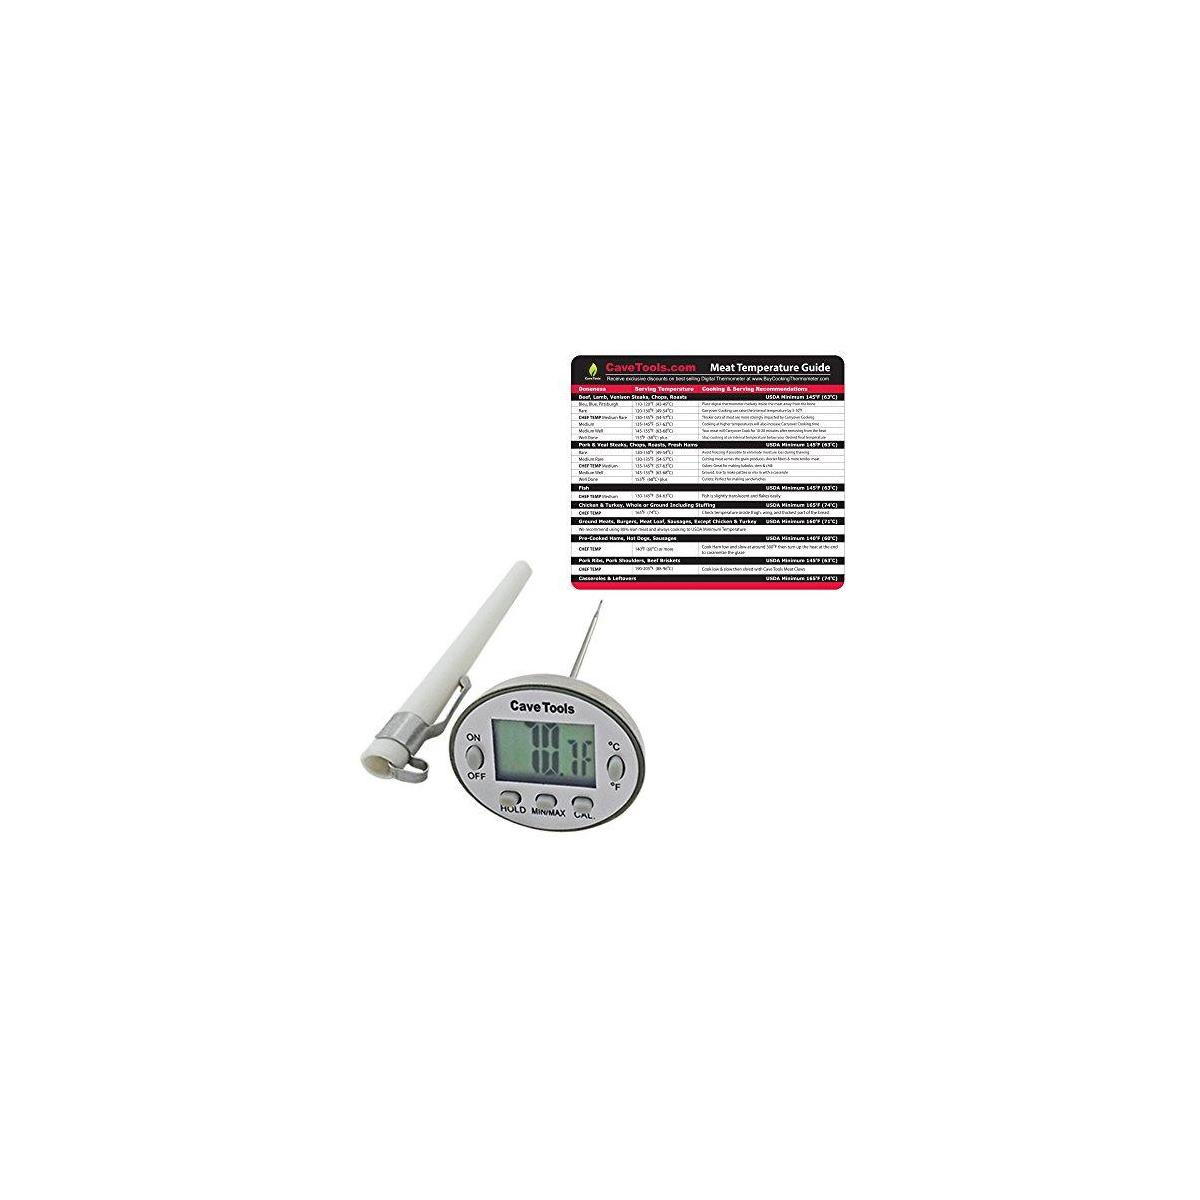 Meat Temp Chart + Digital Thermometer - INSTANT READ PROBE - For Cooking BBQ Candy Chocolate Liquids Baking & Food in Kitchen - Use on Grill Smoker or Barbecue for Quick & Accurate Temperatures